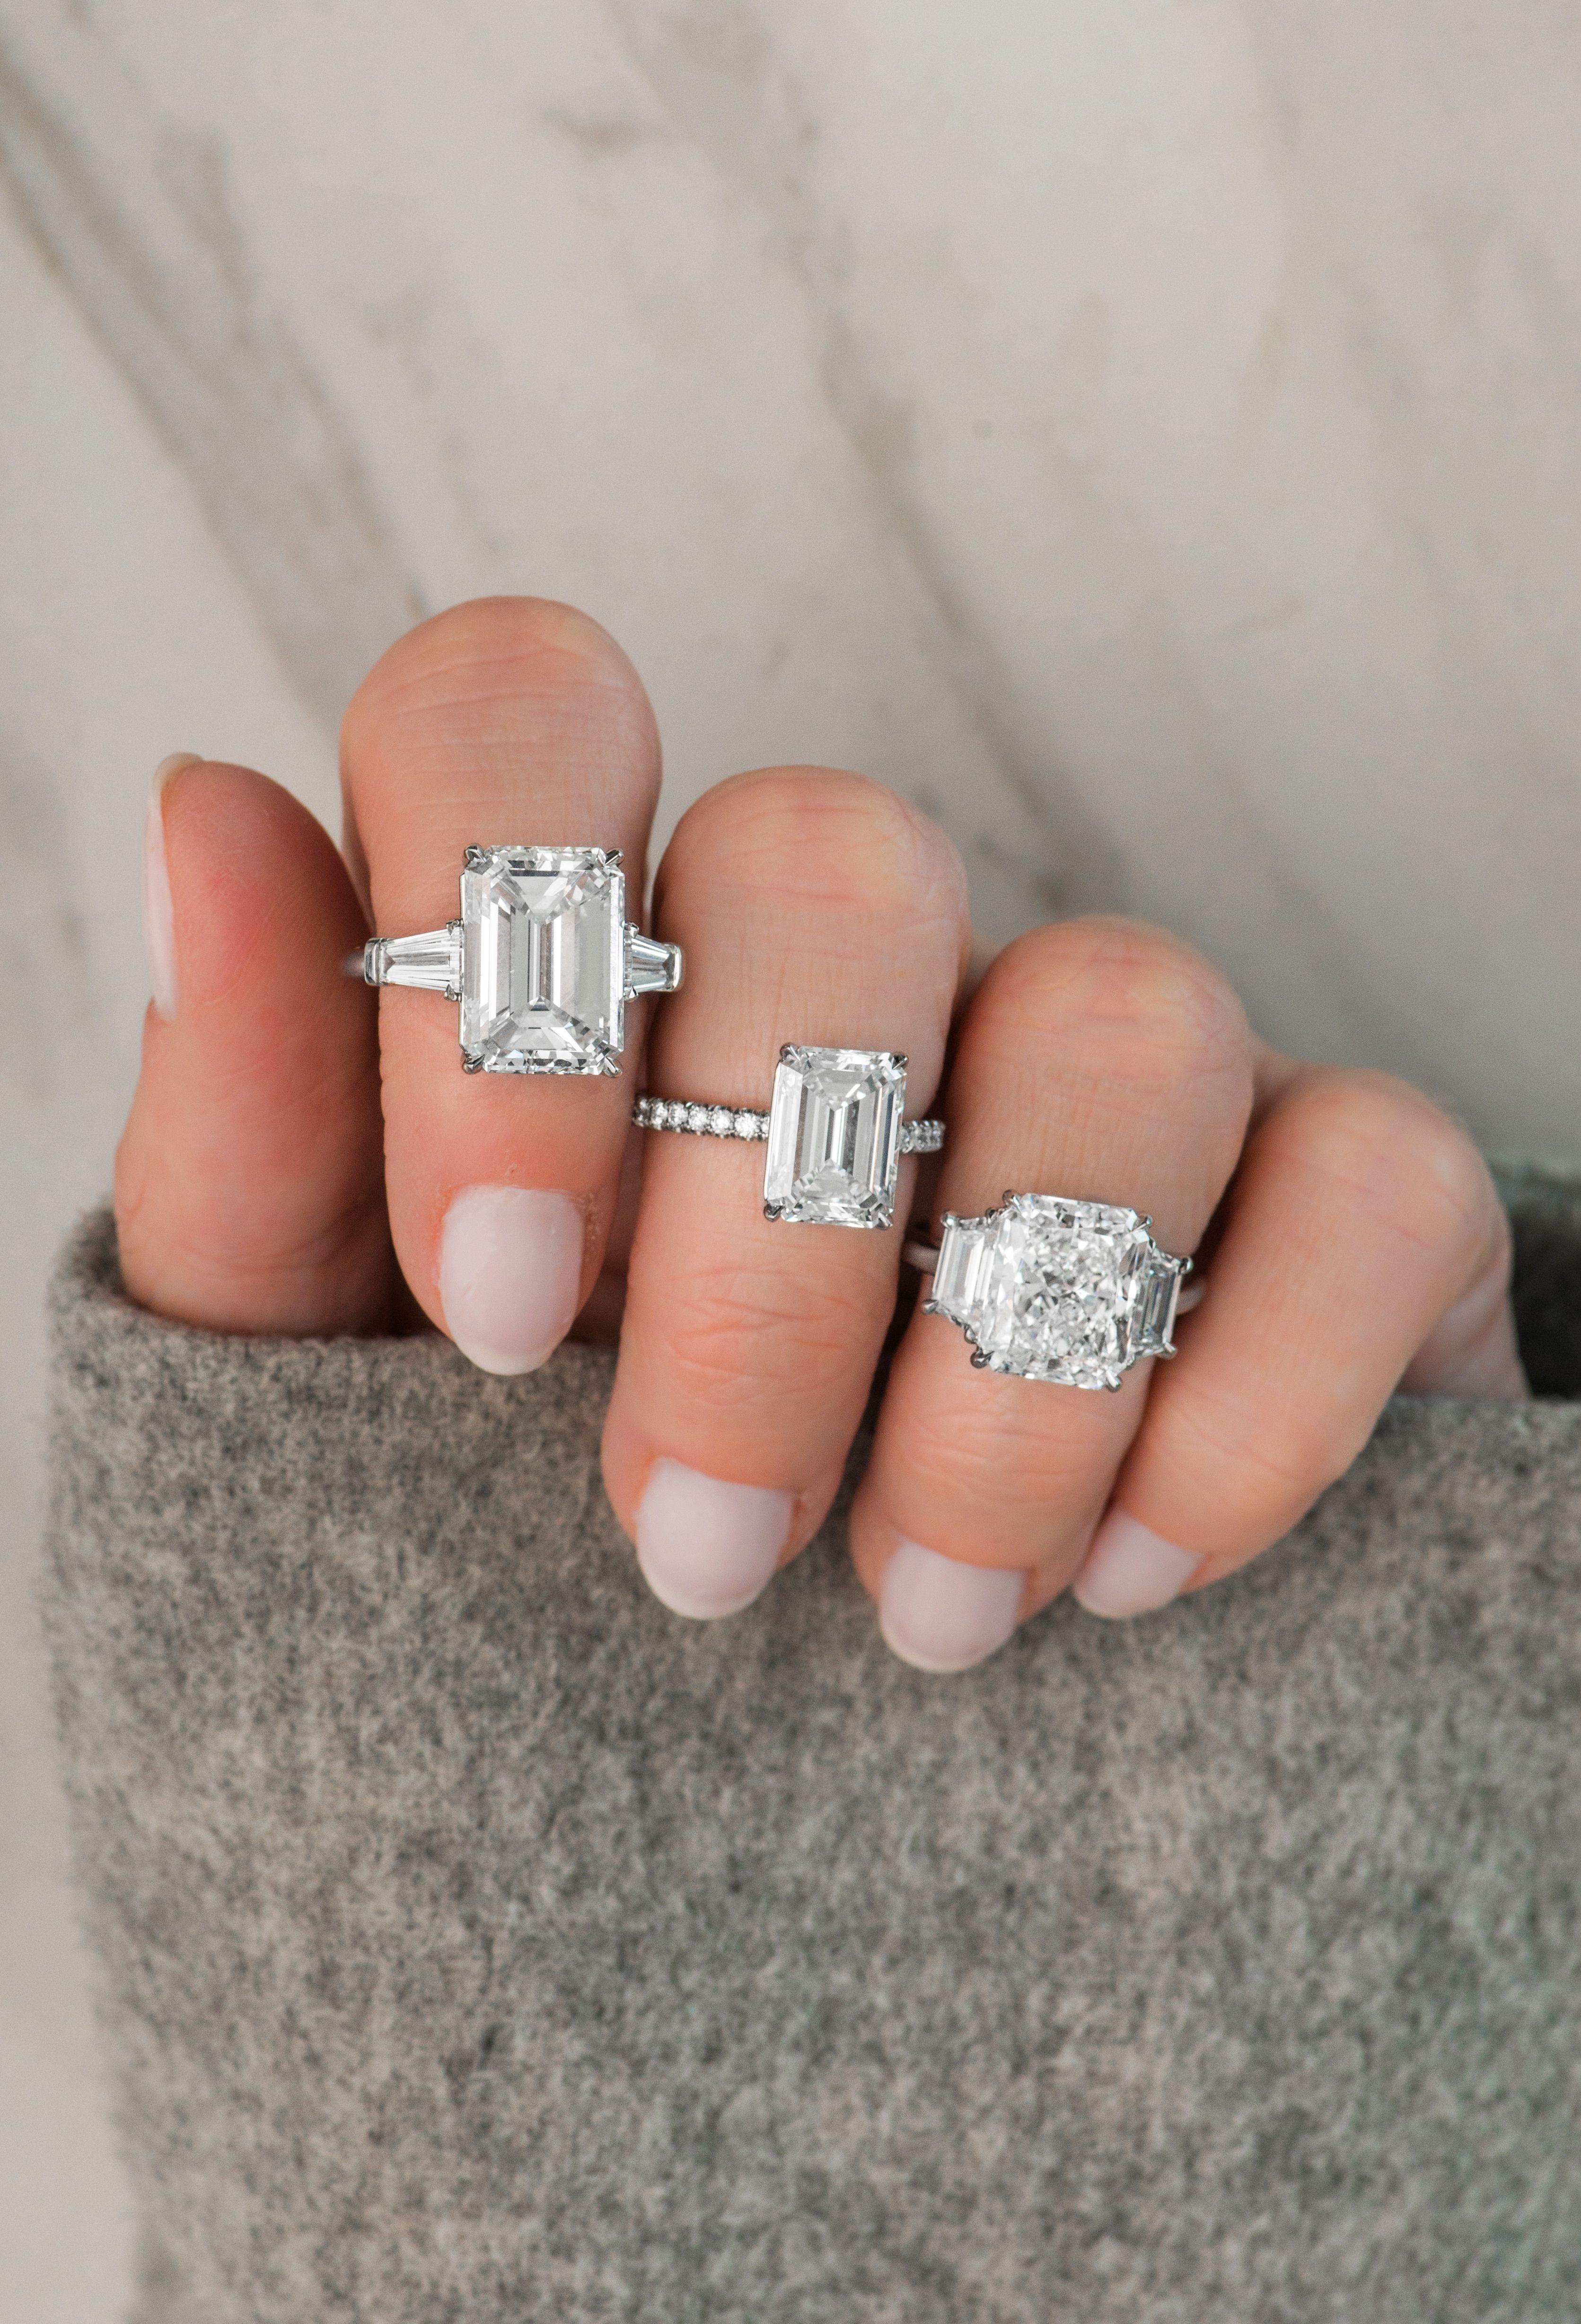 Looking For An Emeraldcut Diamond Engagement Ring We Have You Covered Find The Exact Style You Want No Diamond Jewelry Store Diamond Stores Jewelry Stores